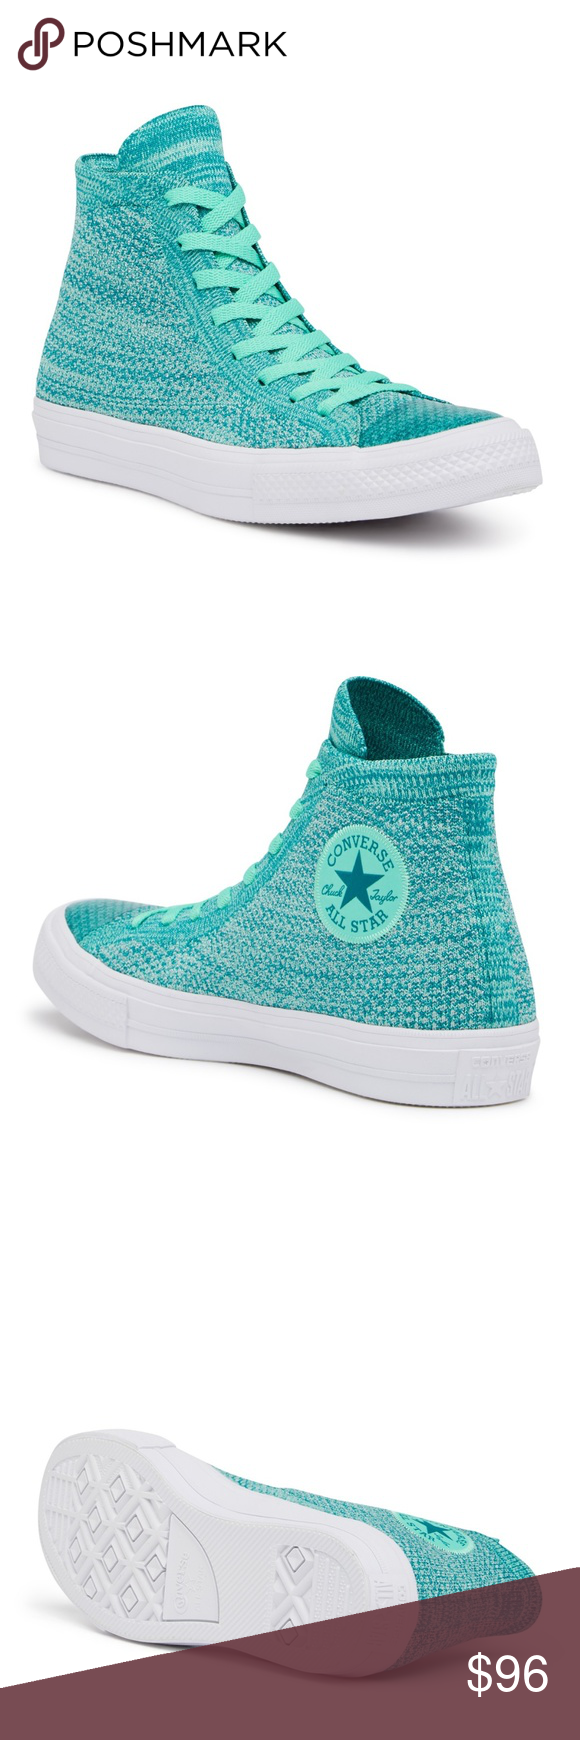 9c006938044a8 Converse Chuck Taylor All Star x Nike FlyKnit Hi-T Sizing  Sized according  to Unisex sizes. Size selection displays Men s (M) and Women s (W) sizing.